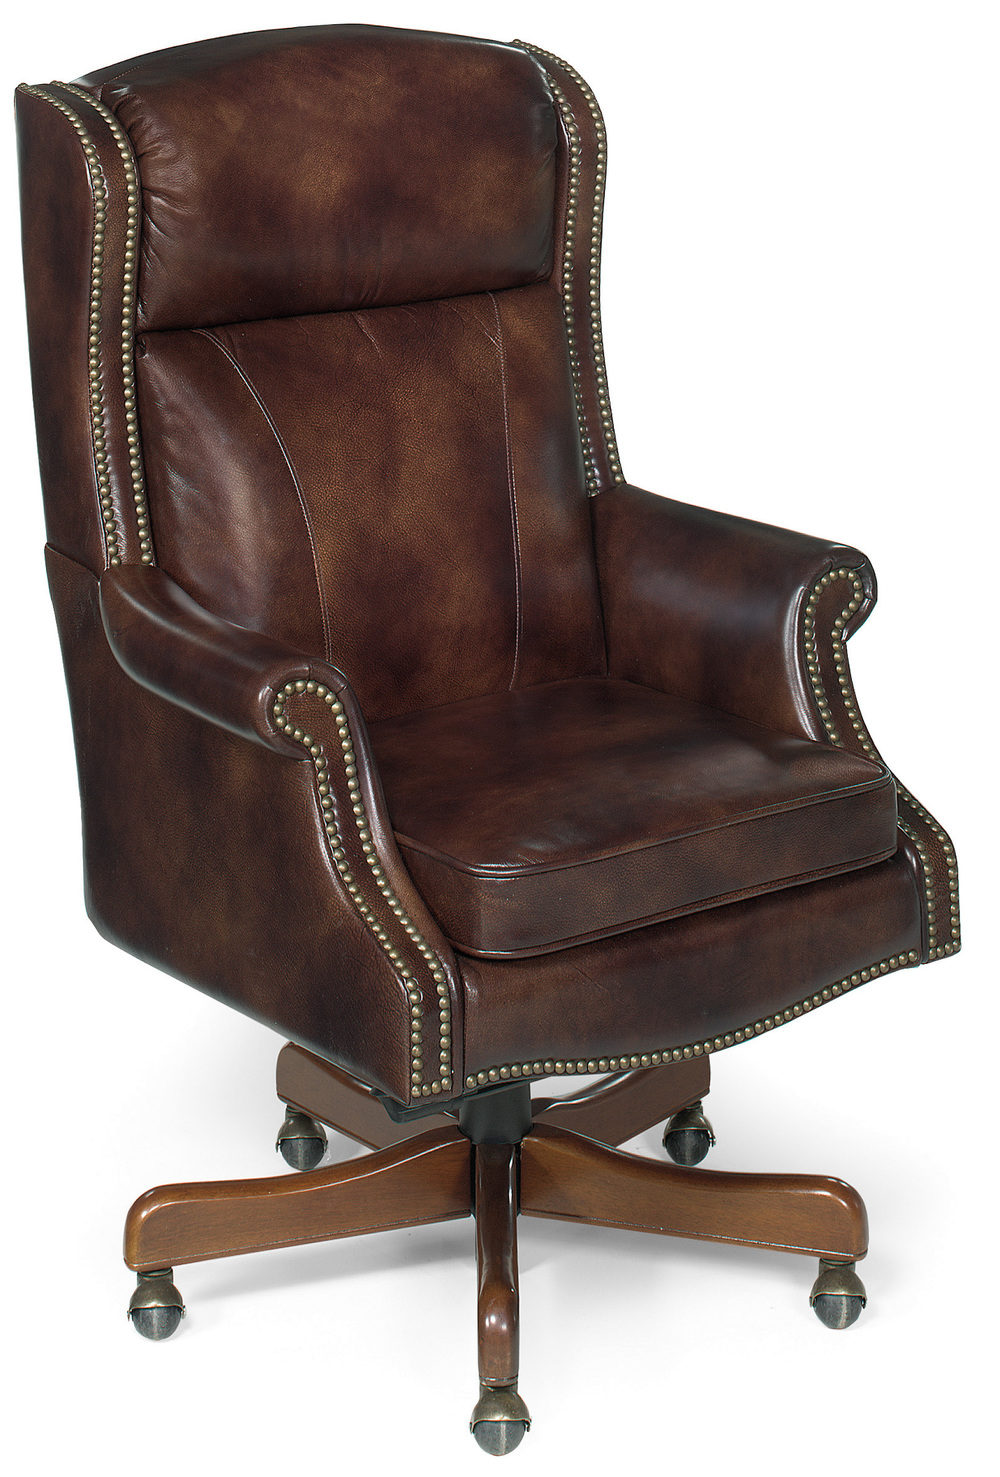 Hooker Furniture - Merlin Executive Swivel Tilt Chair